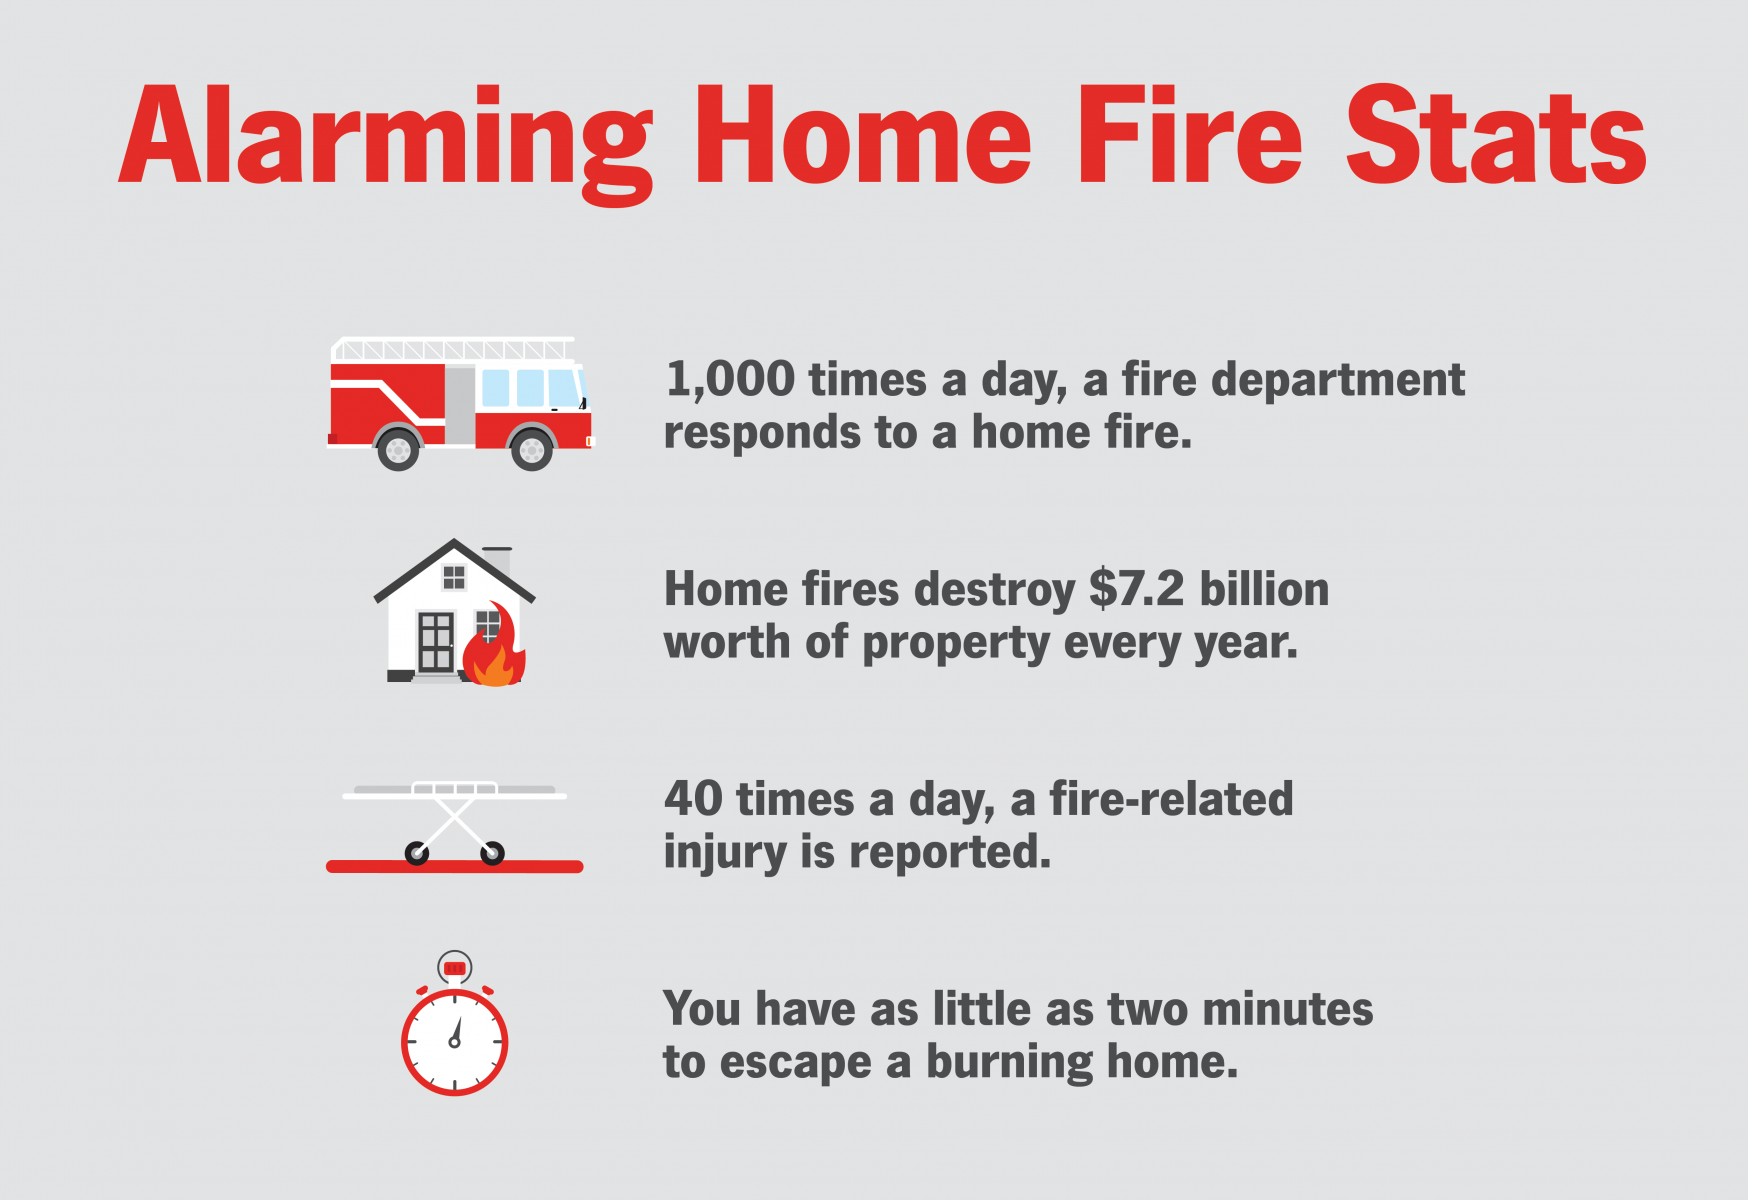 Alarming Home Fire Statistics